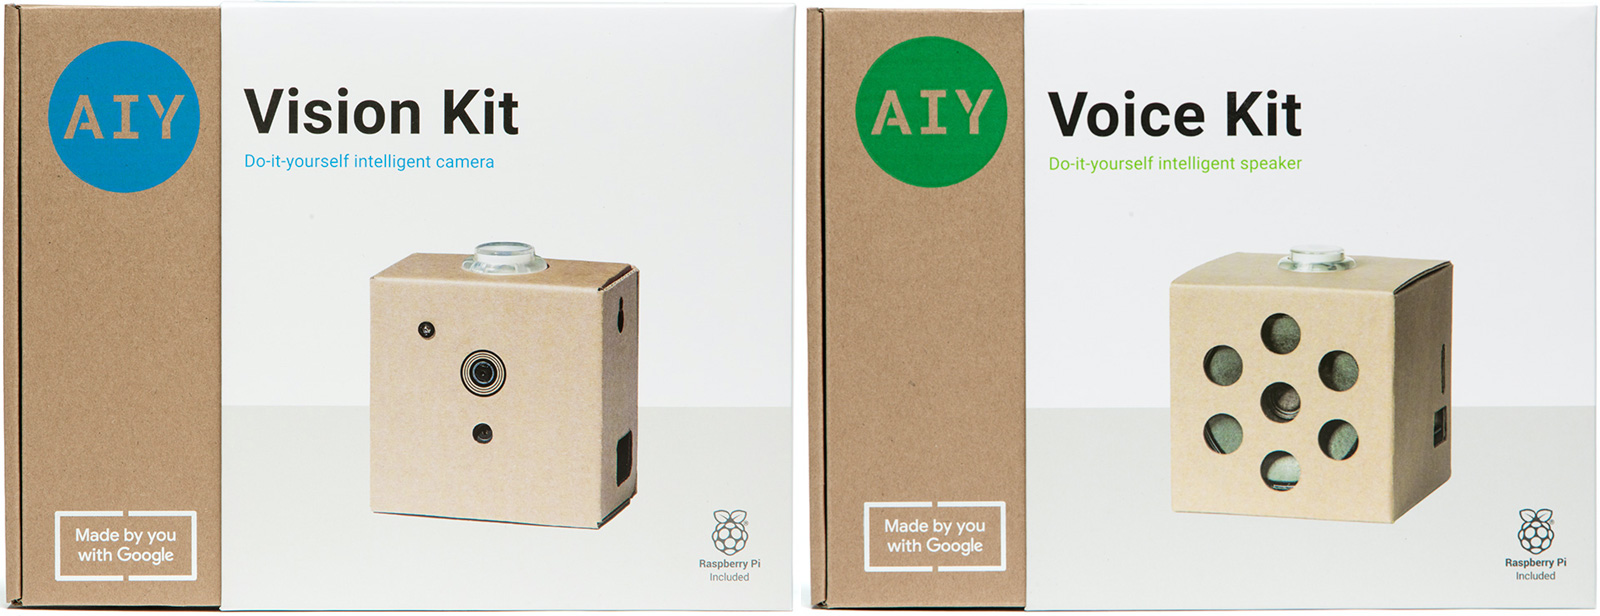 Googles latest do it yourself ai kits include everything you need but its also a realistic price hike youre now paying for everything up front in that sense theyre kinder to parents and anyone else who might solutioingenieria Gallery